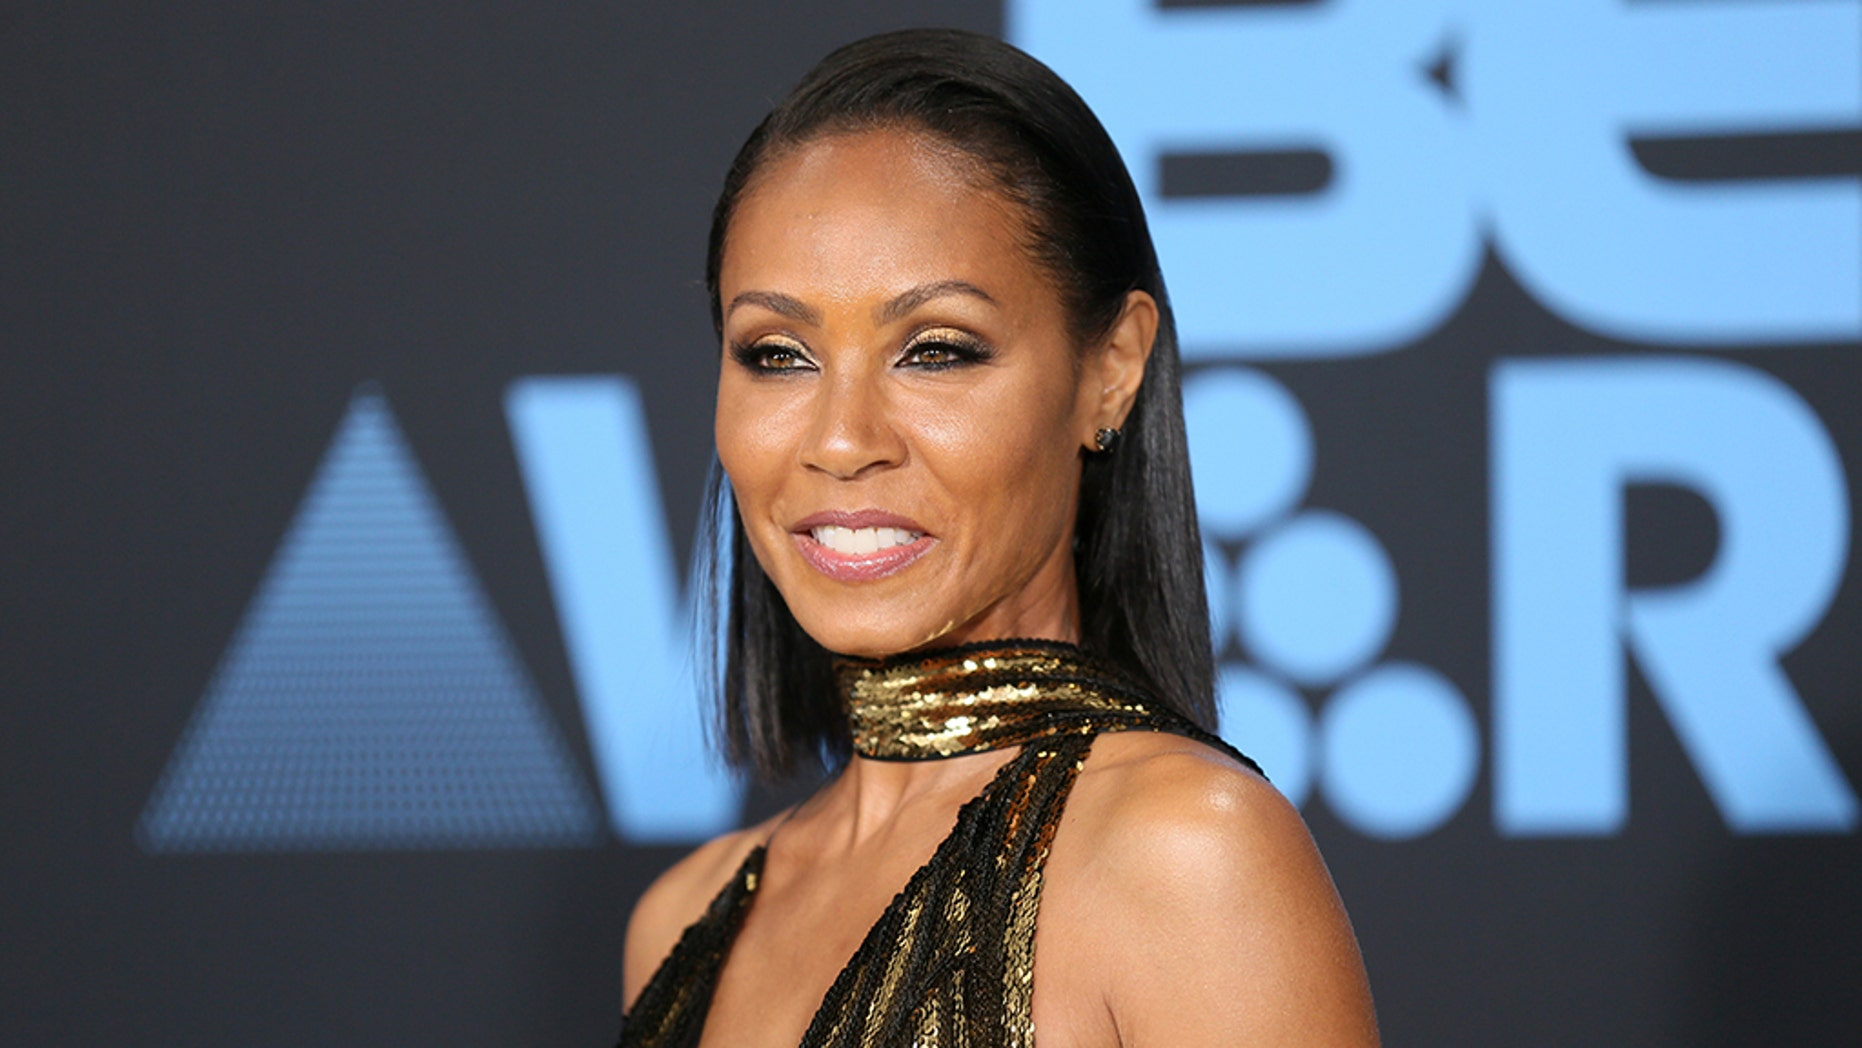 Jada Pinkett Smith Says She Pulled Knife On Drunk Boyfriend